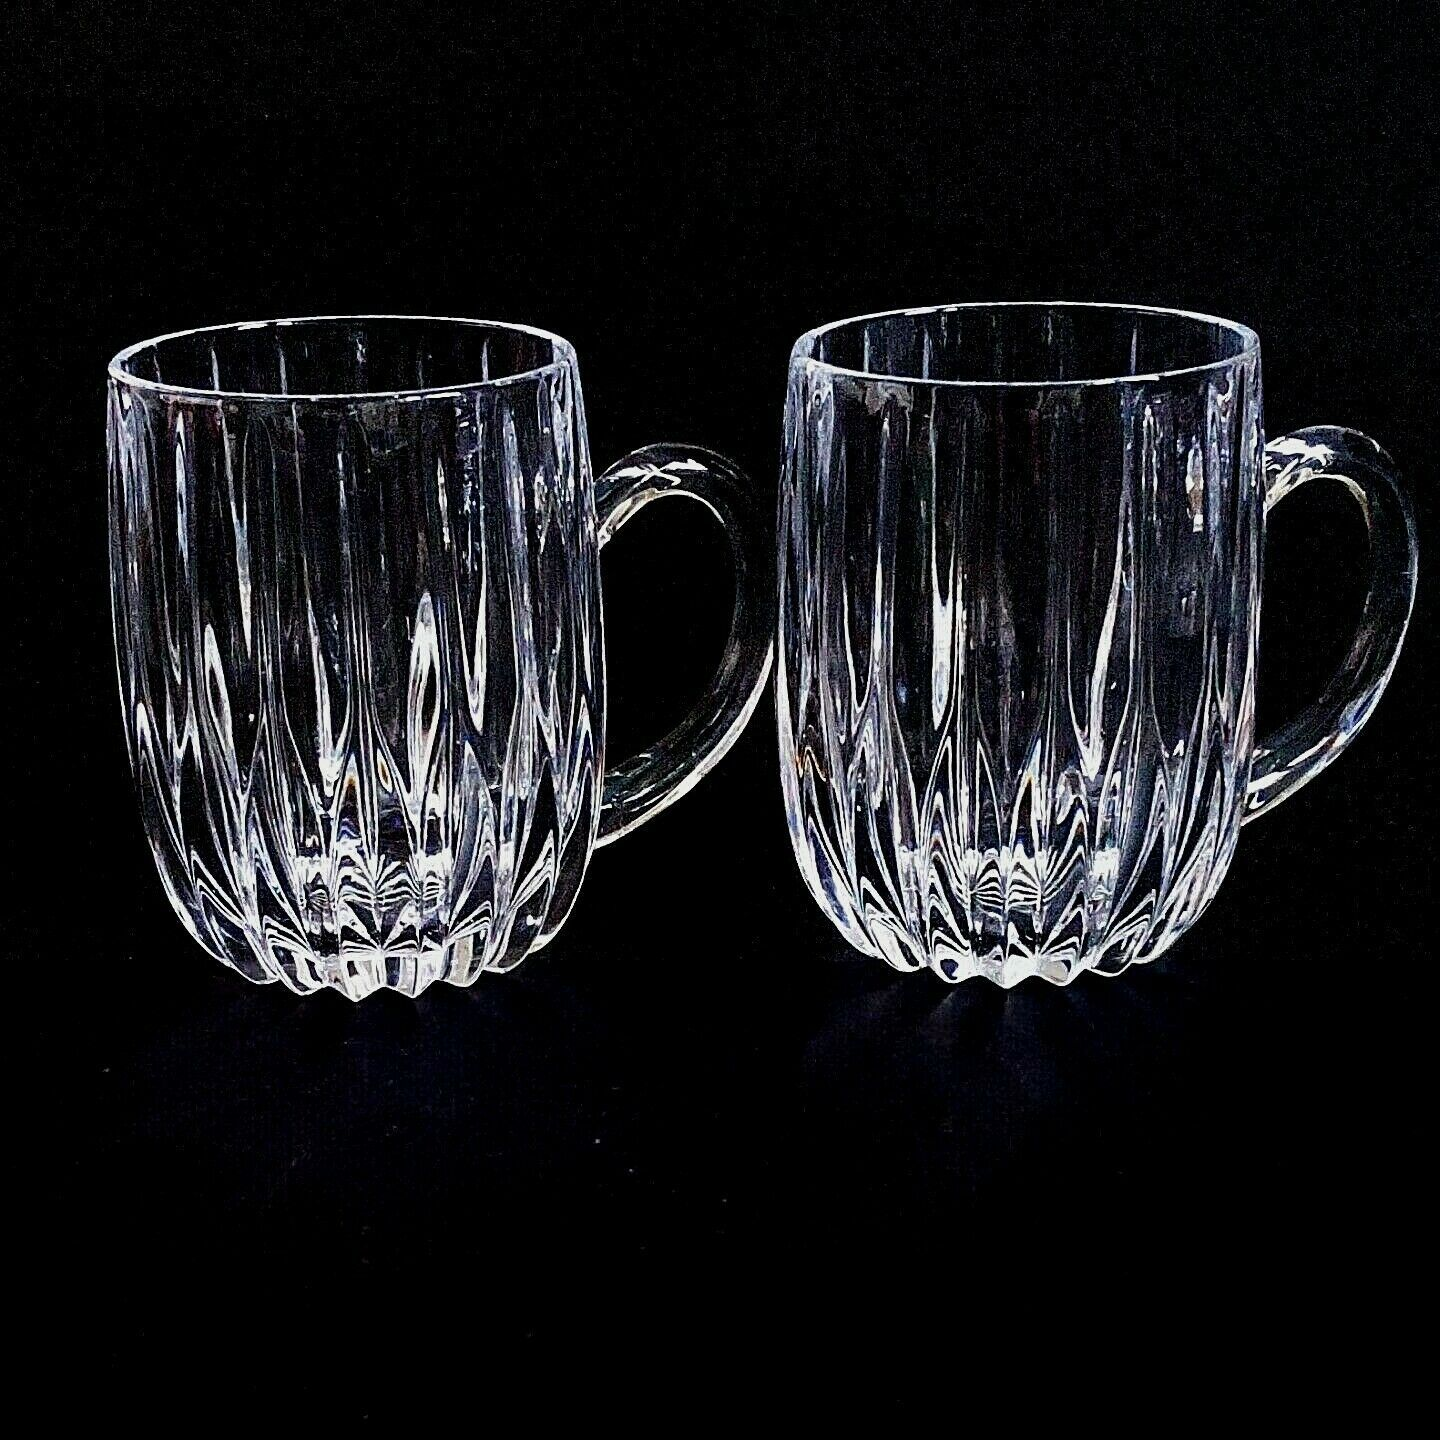 Primary image for 2 (Two) MIKASA PARK LANE Cut Lead Crystal Mugs - DISCONTINUED